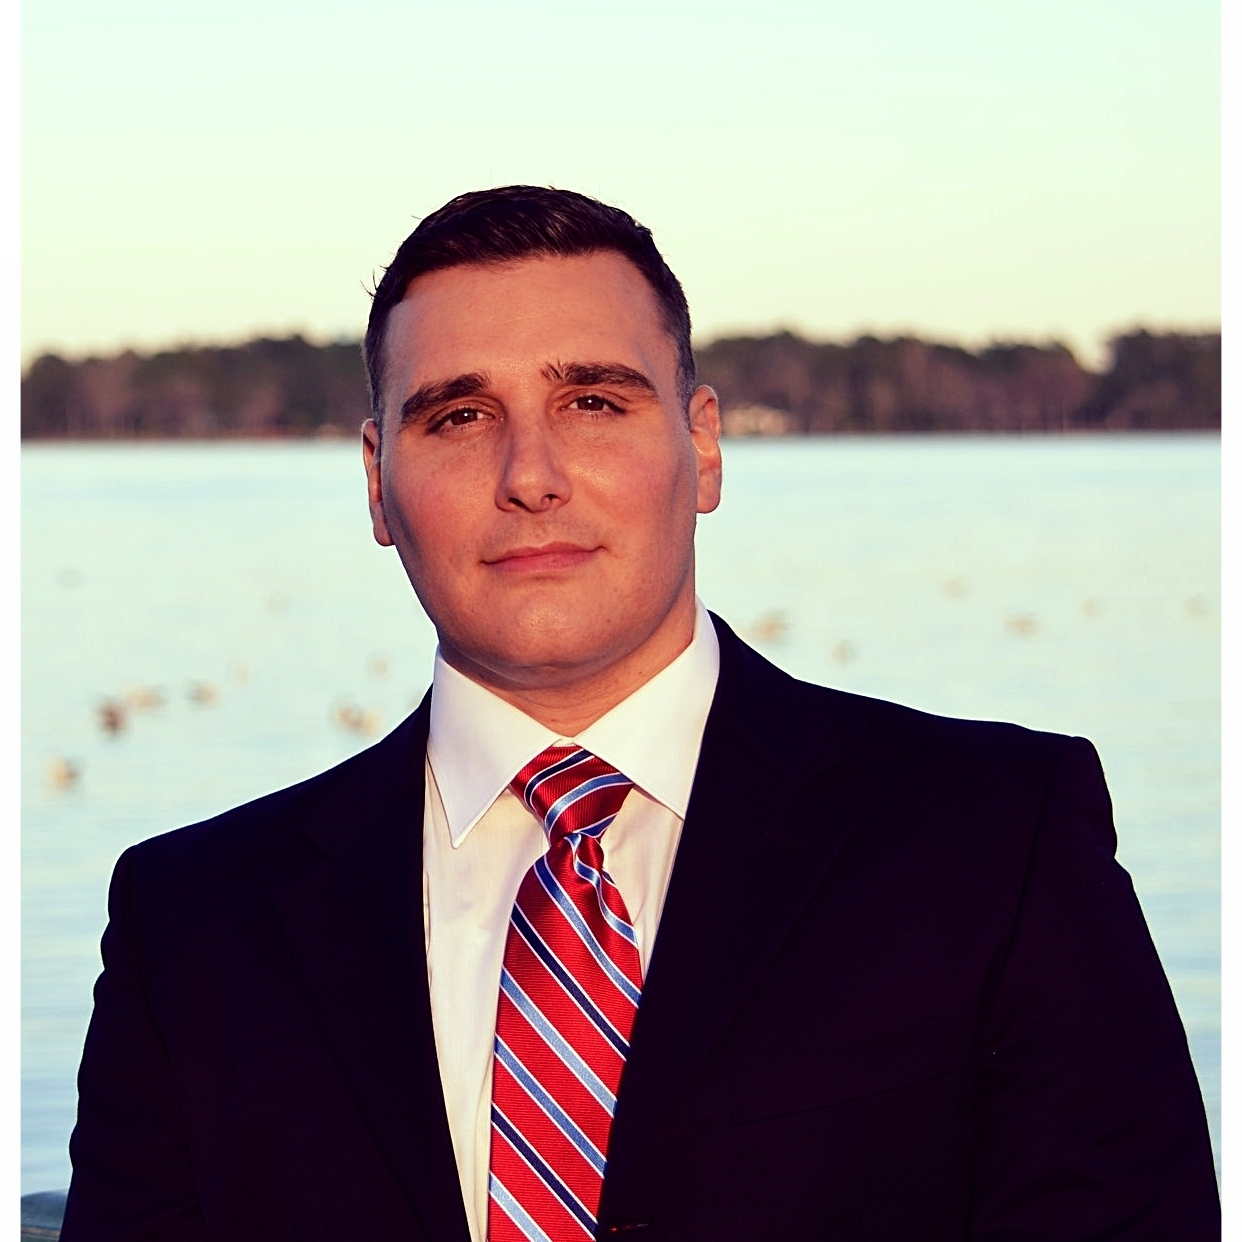 Anthony Felicio - PartnerProfessional aviation has always been my passion which led me to receive my undergraduate degree from Embry- Riddle Aeronautical University. I received my master's degree from Boston University in organizational leadership and project management. My Marine Corps and Naval Aviator experience includes a wide array of flight operations, test & evaluation, quality assurance, safety management, flight instruction, process standardization, and financial management.